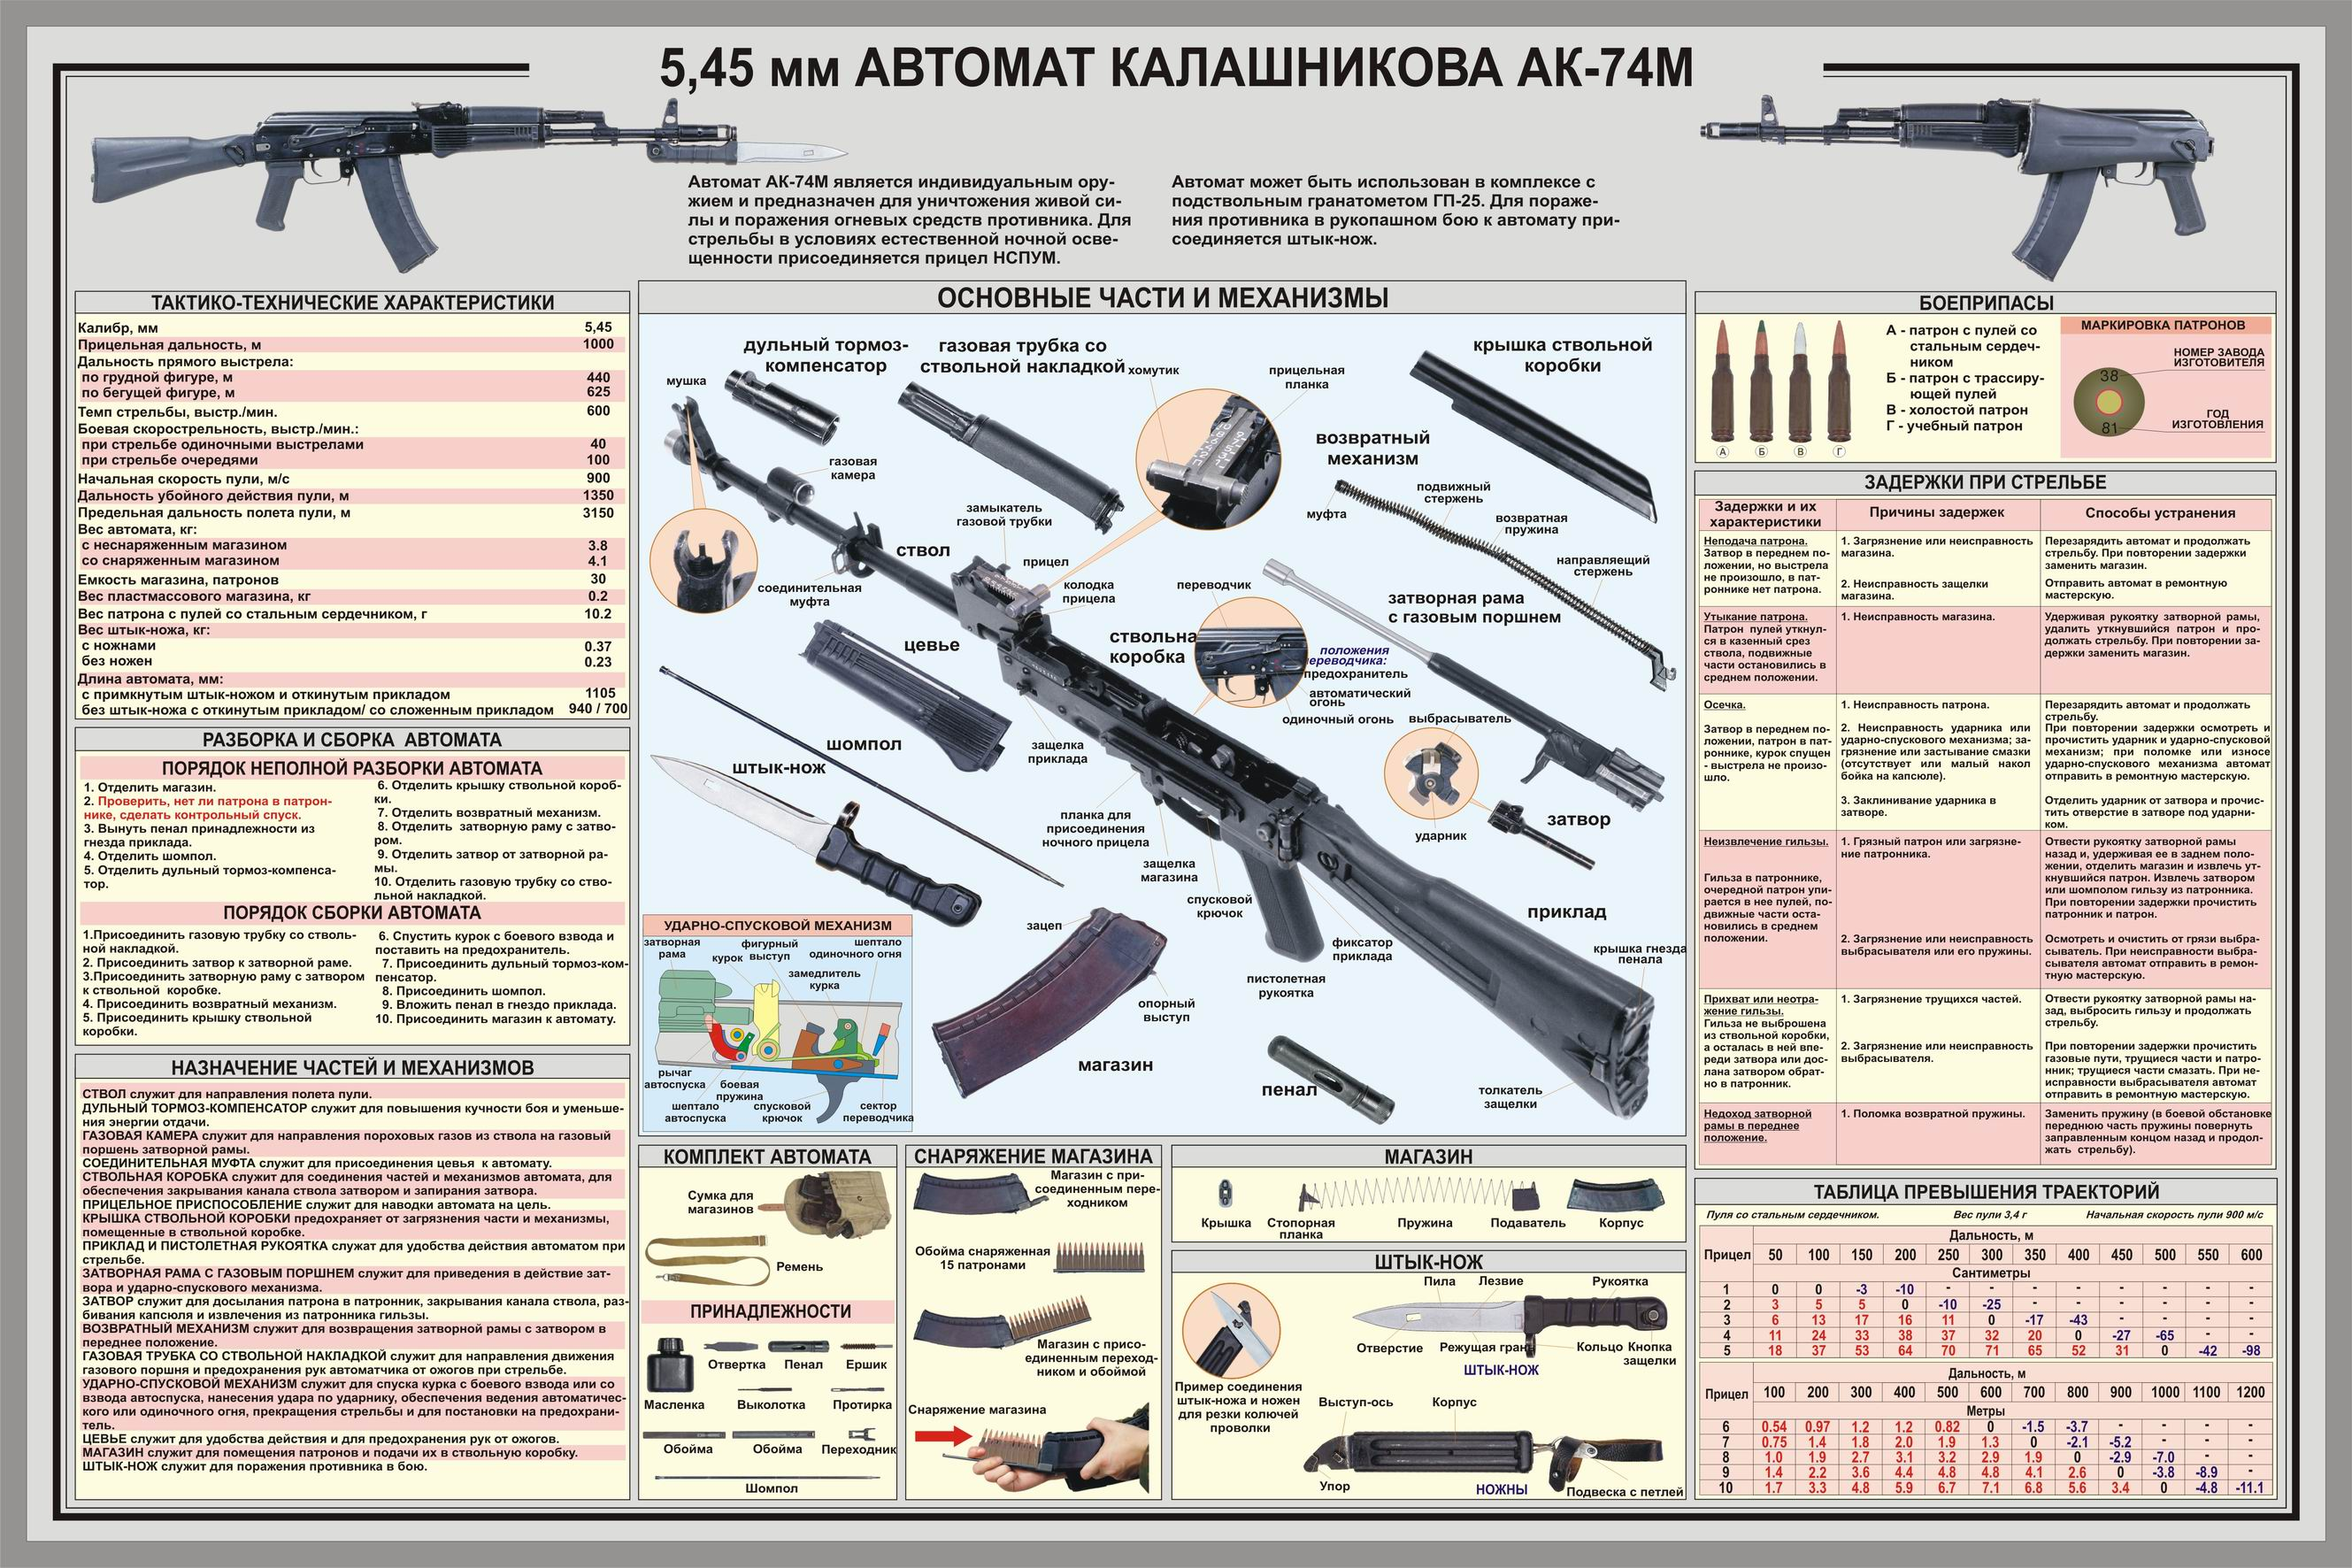 ak 47 receiver parts diagram bayliner capri wiring akm 74 the savannah arsenal project